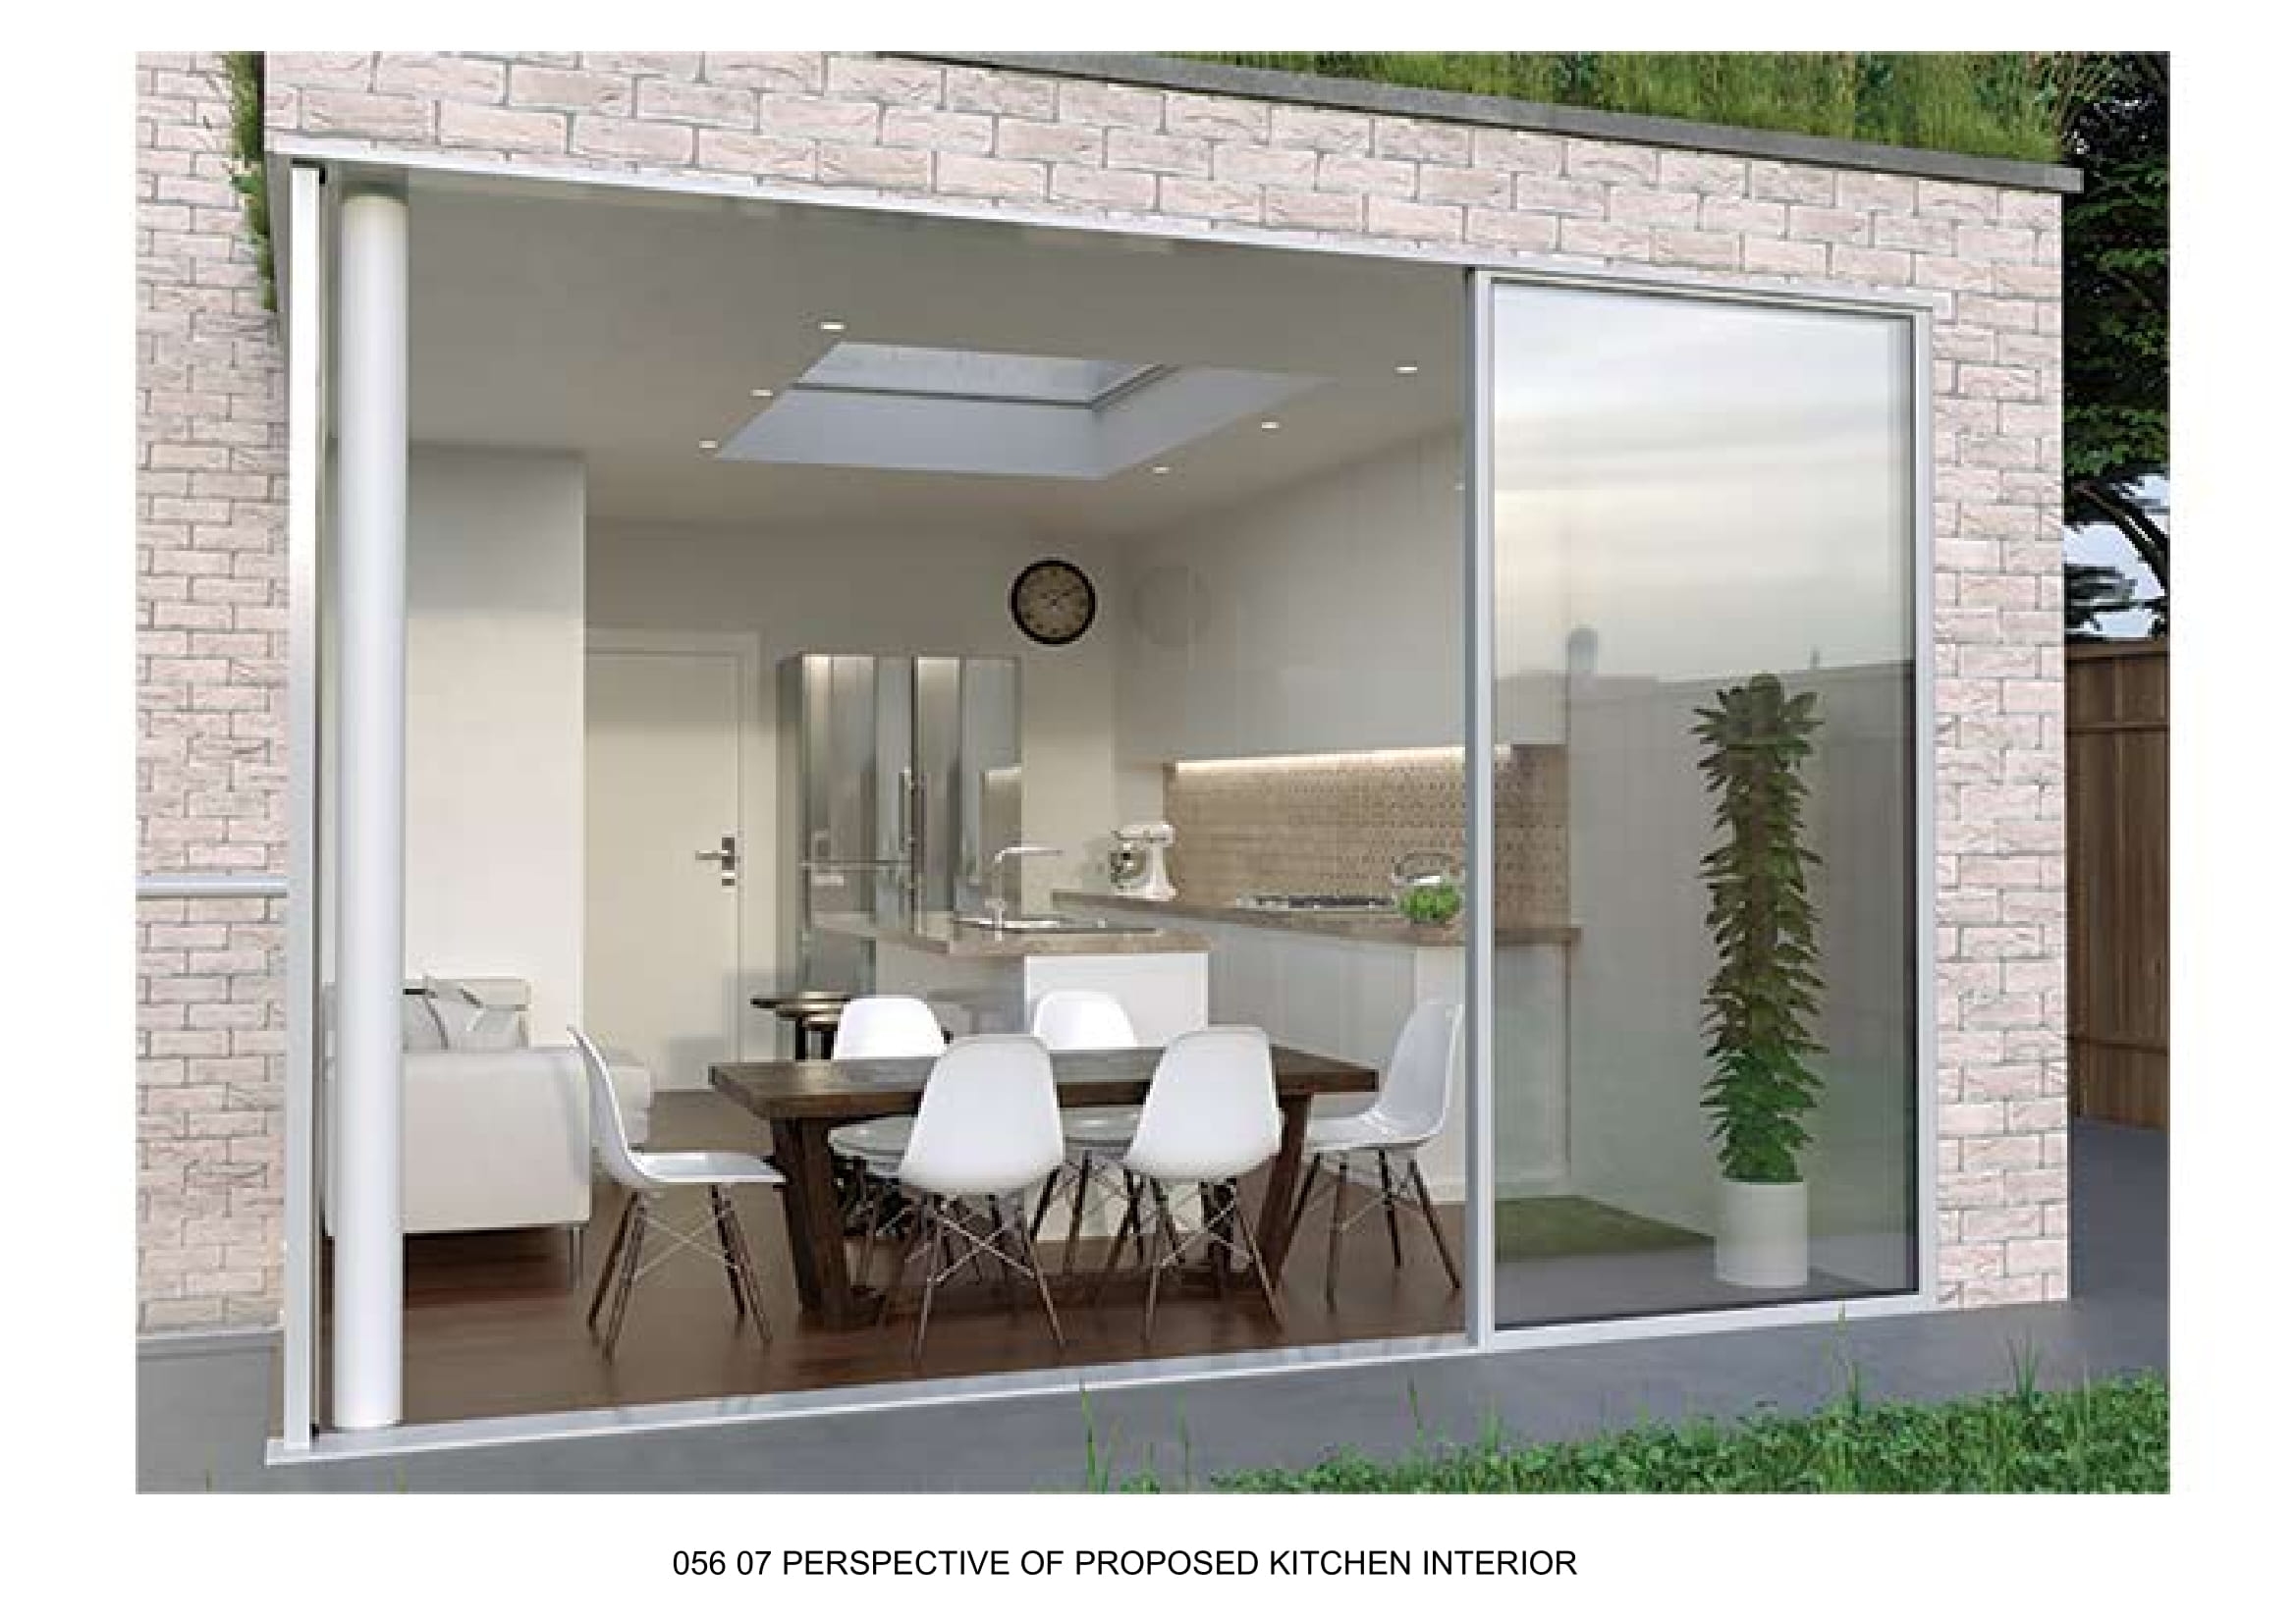 056 07 PERSPECTIVE OF PROPOSED KITCHEN INTERIOR-1.jpg